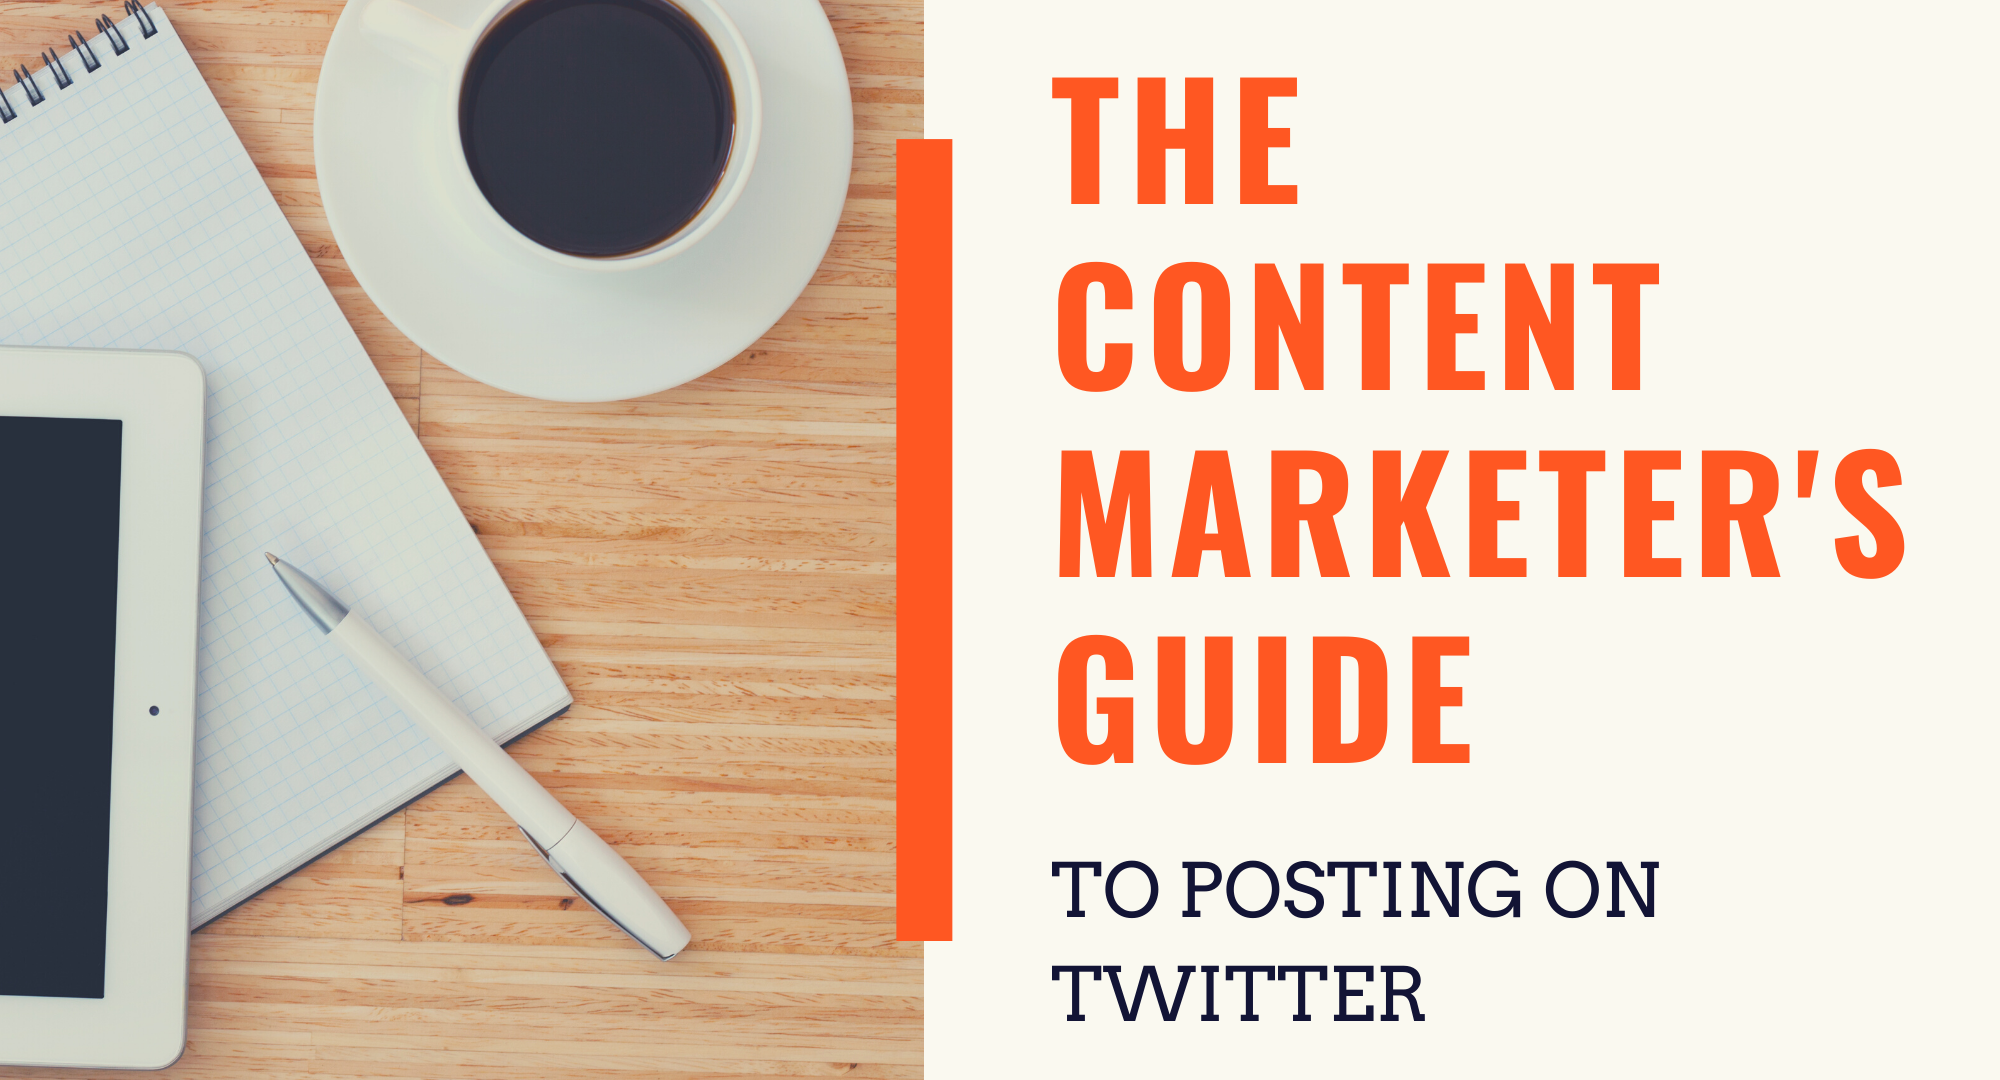 The Content Marketer's Guide to Posting on Twitter